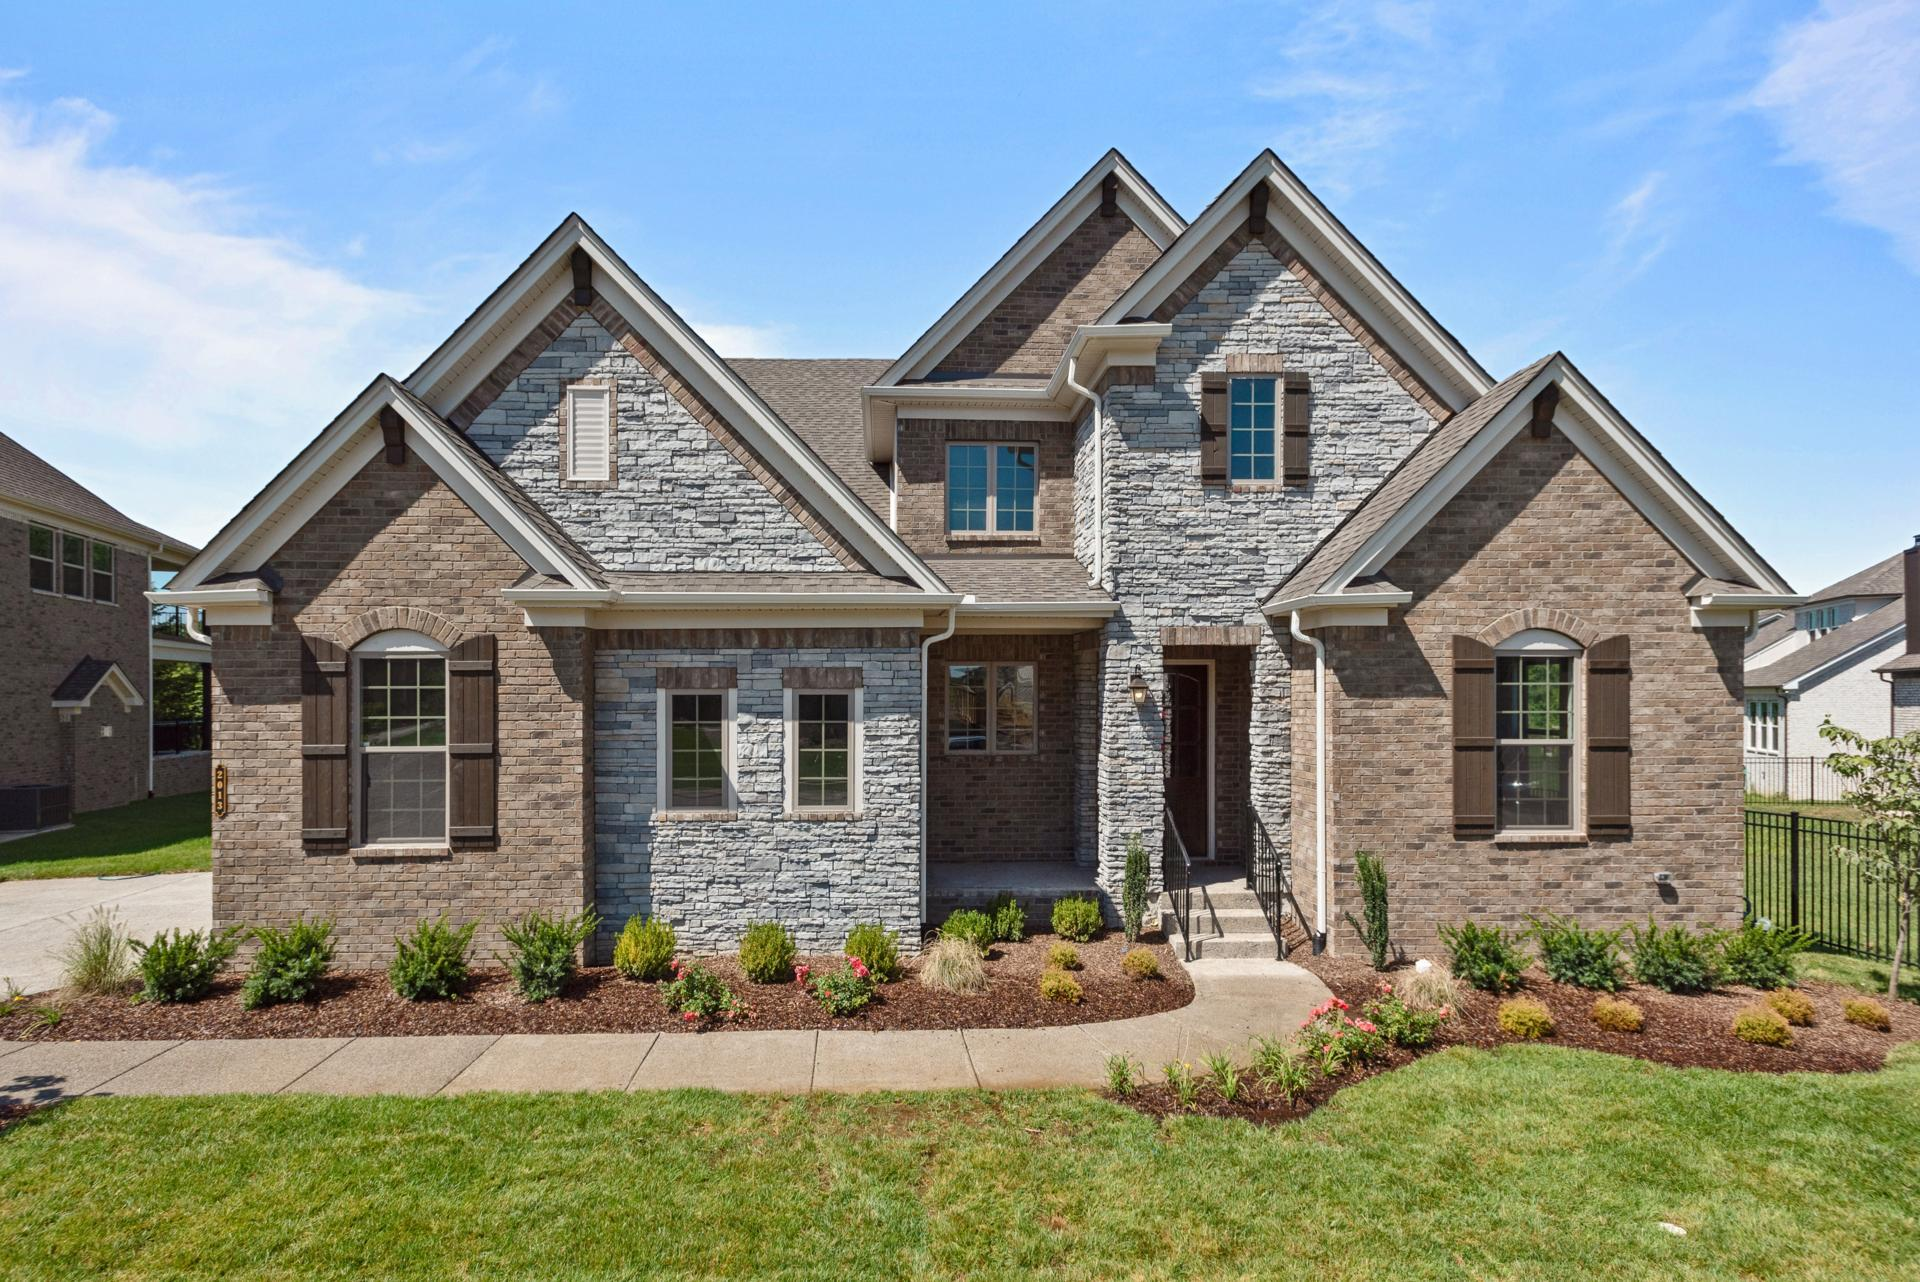 Drees Homes New Home Plans in Franklin TN   NewHomeSource on